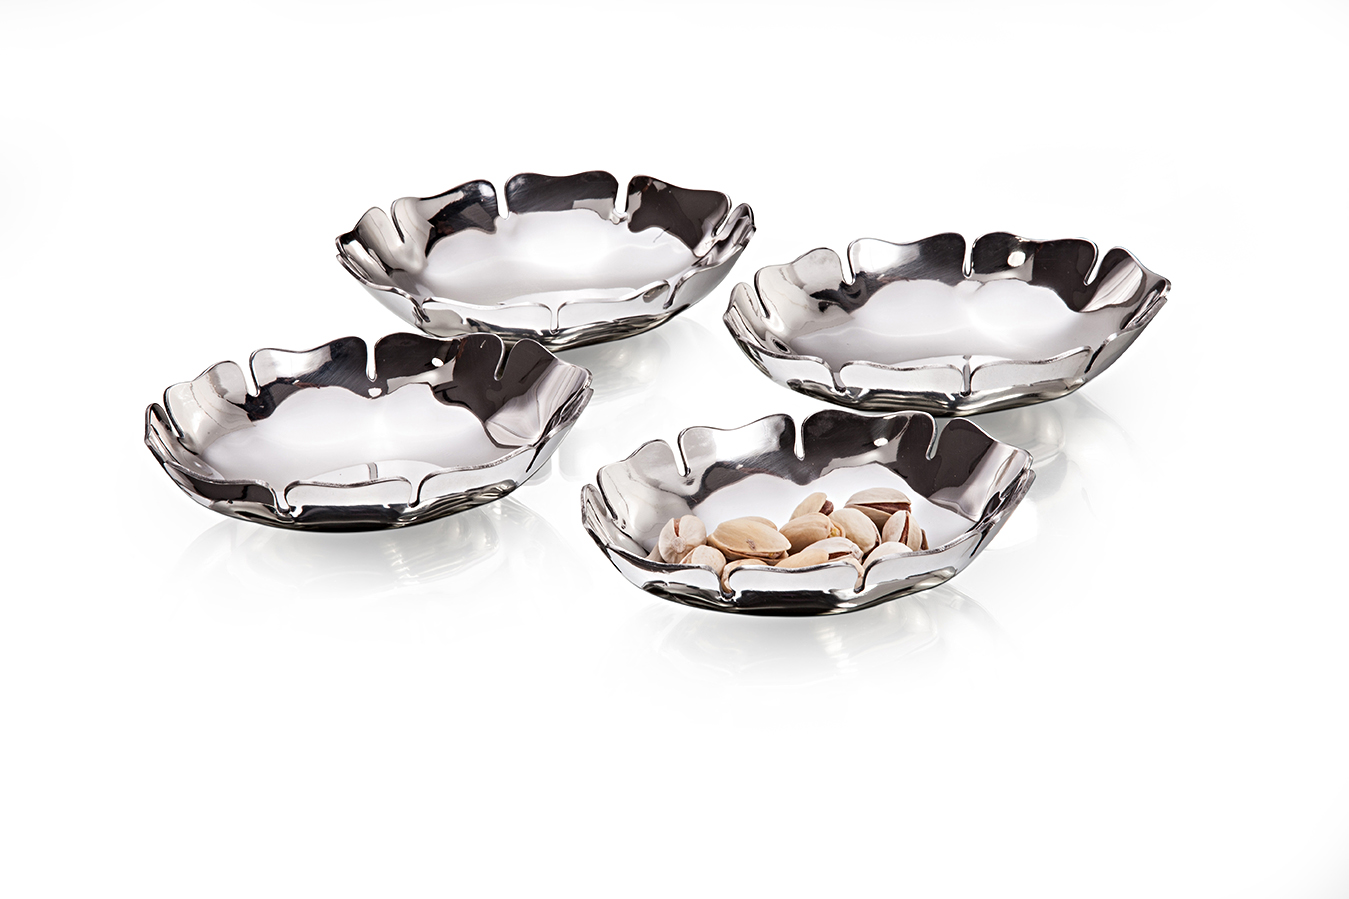 4 Pcs Nut Bowl Premium Mirror Finish. Stainless steel Dessert Sets in Mirror Colour by Sanjeev Kapoor